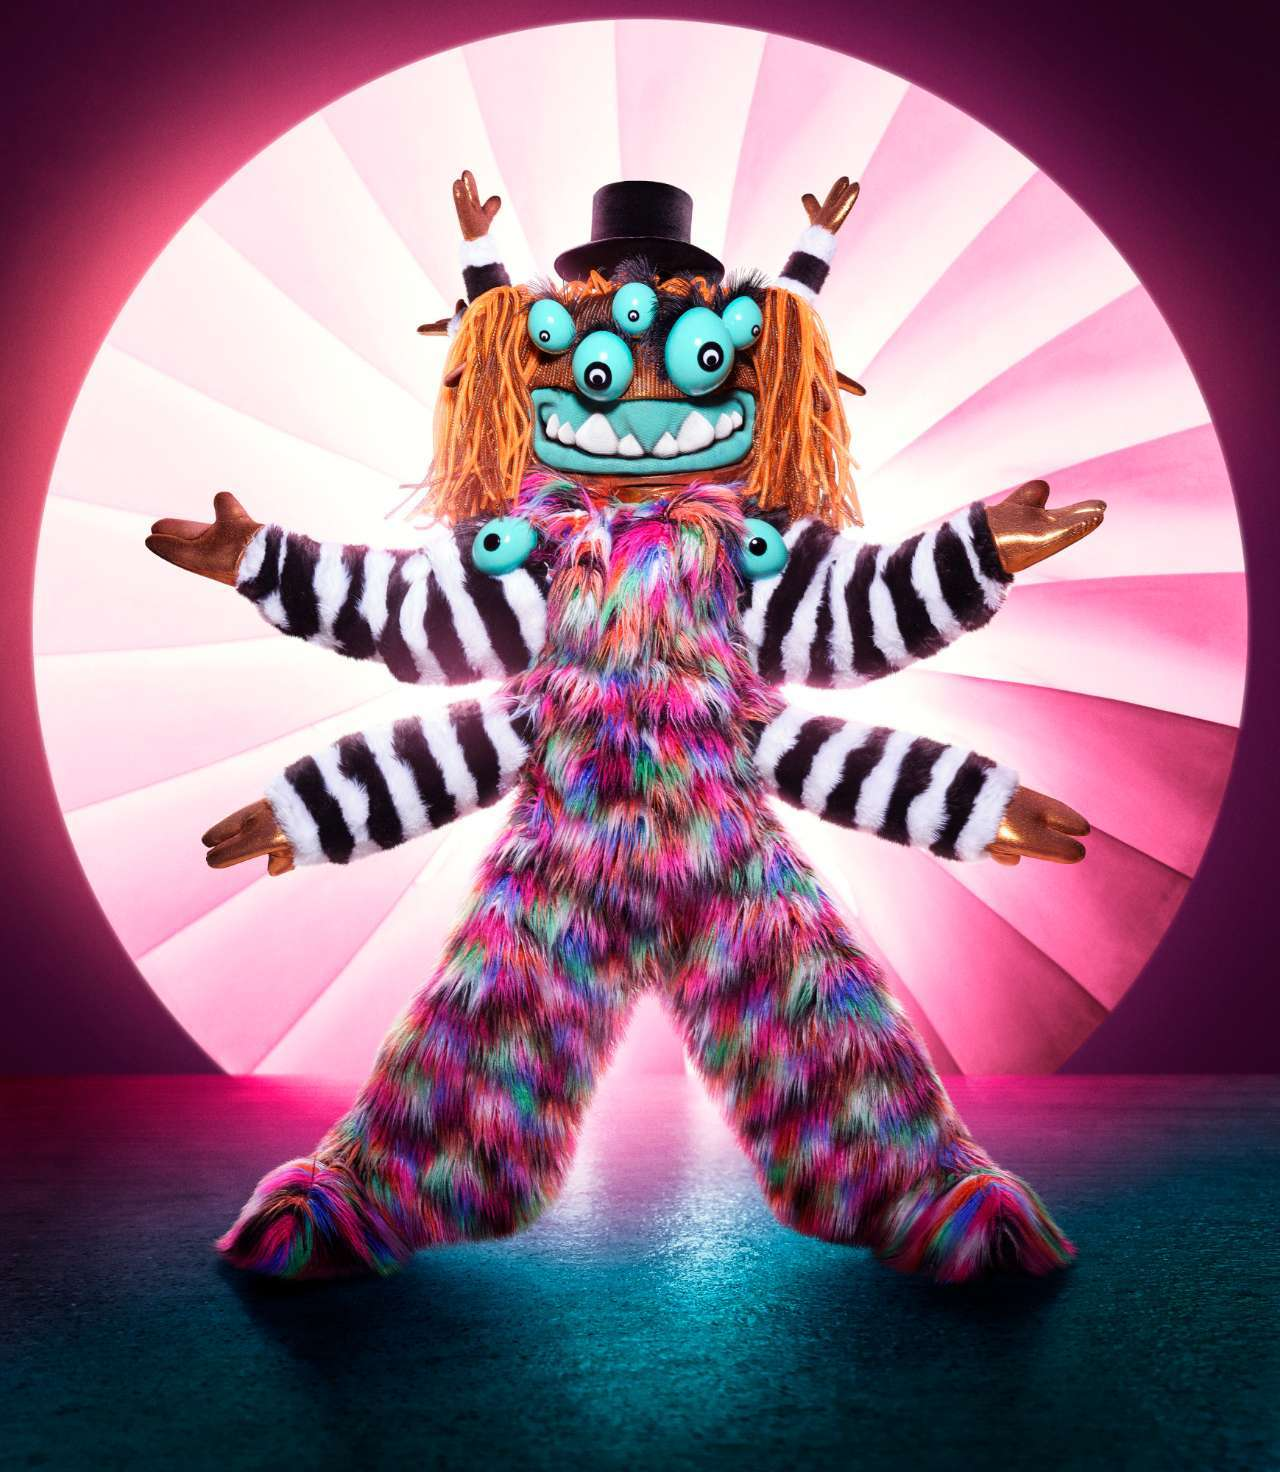 The Masked Singer Squiggly